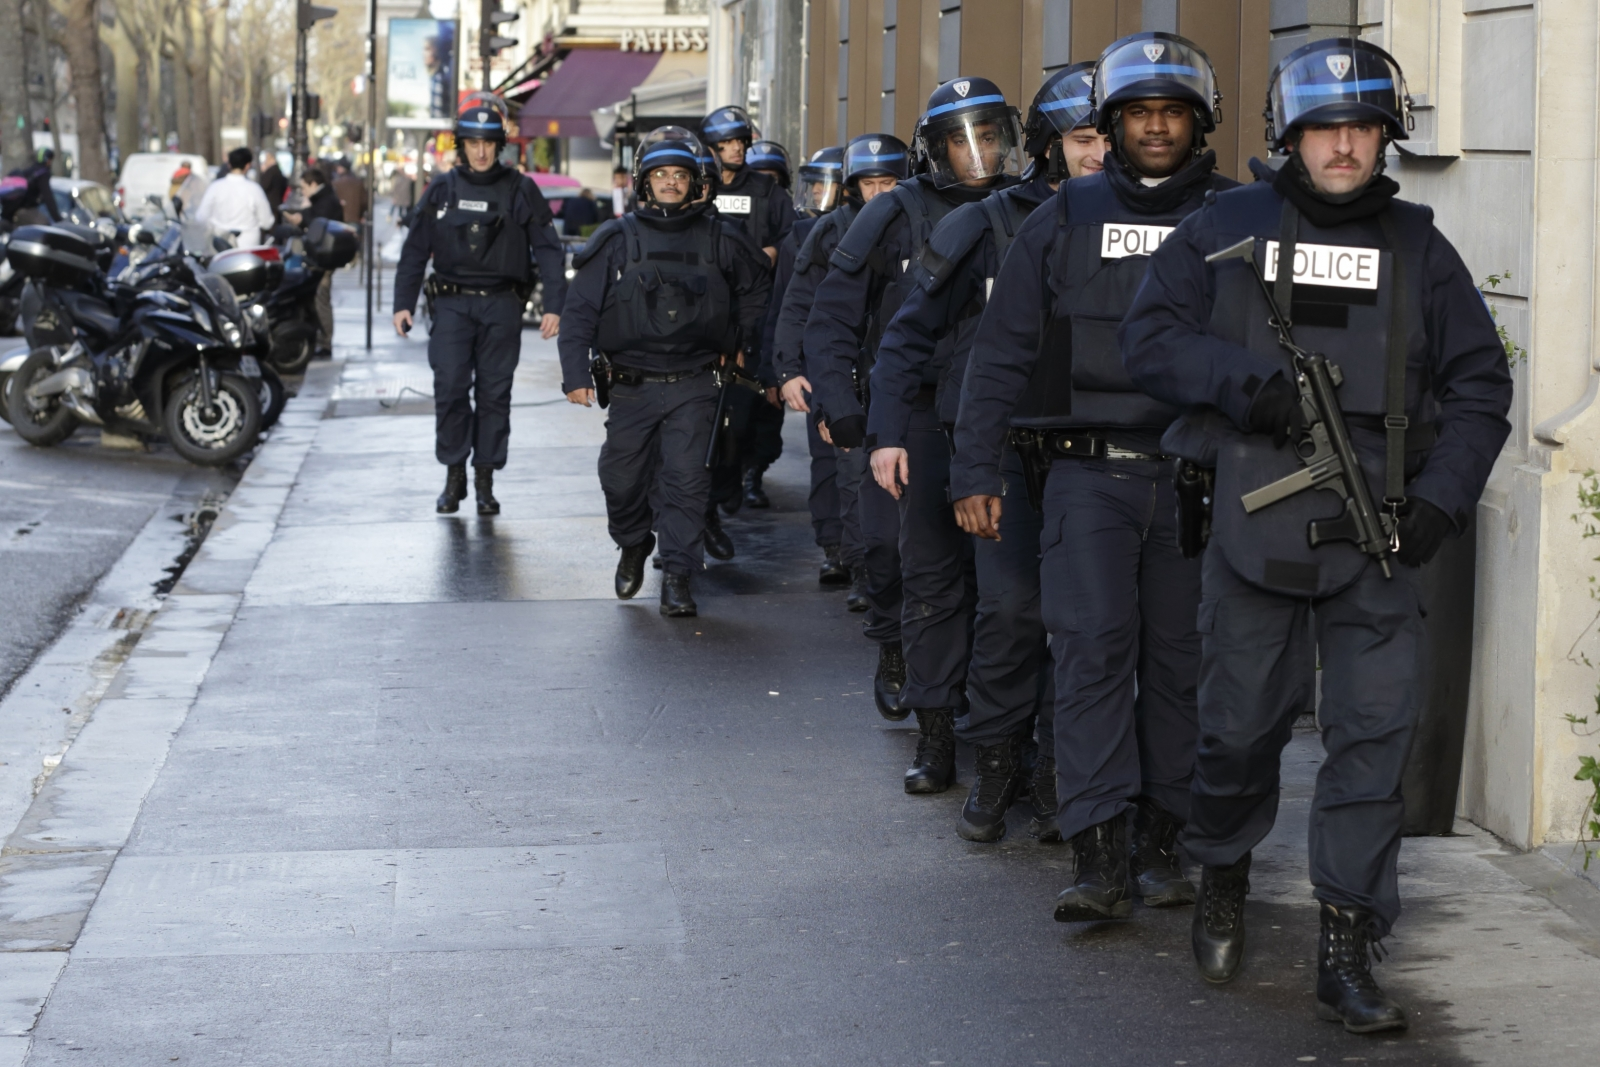 French riot police patrol ahead of the unity rally in central Paris.